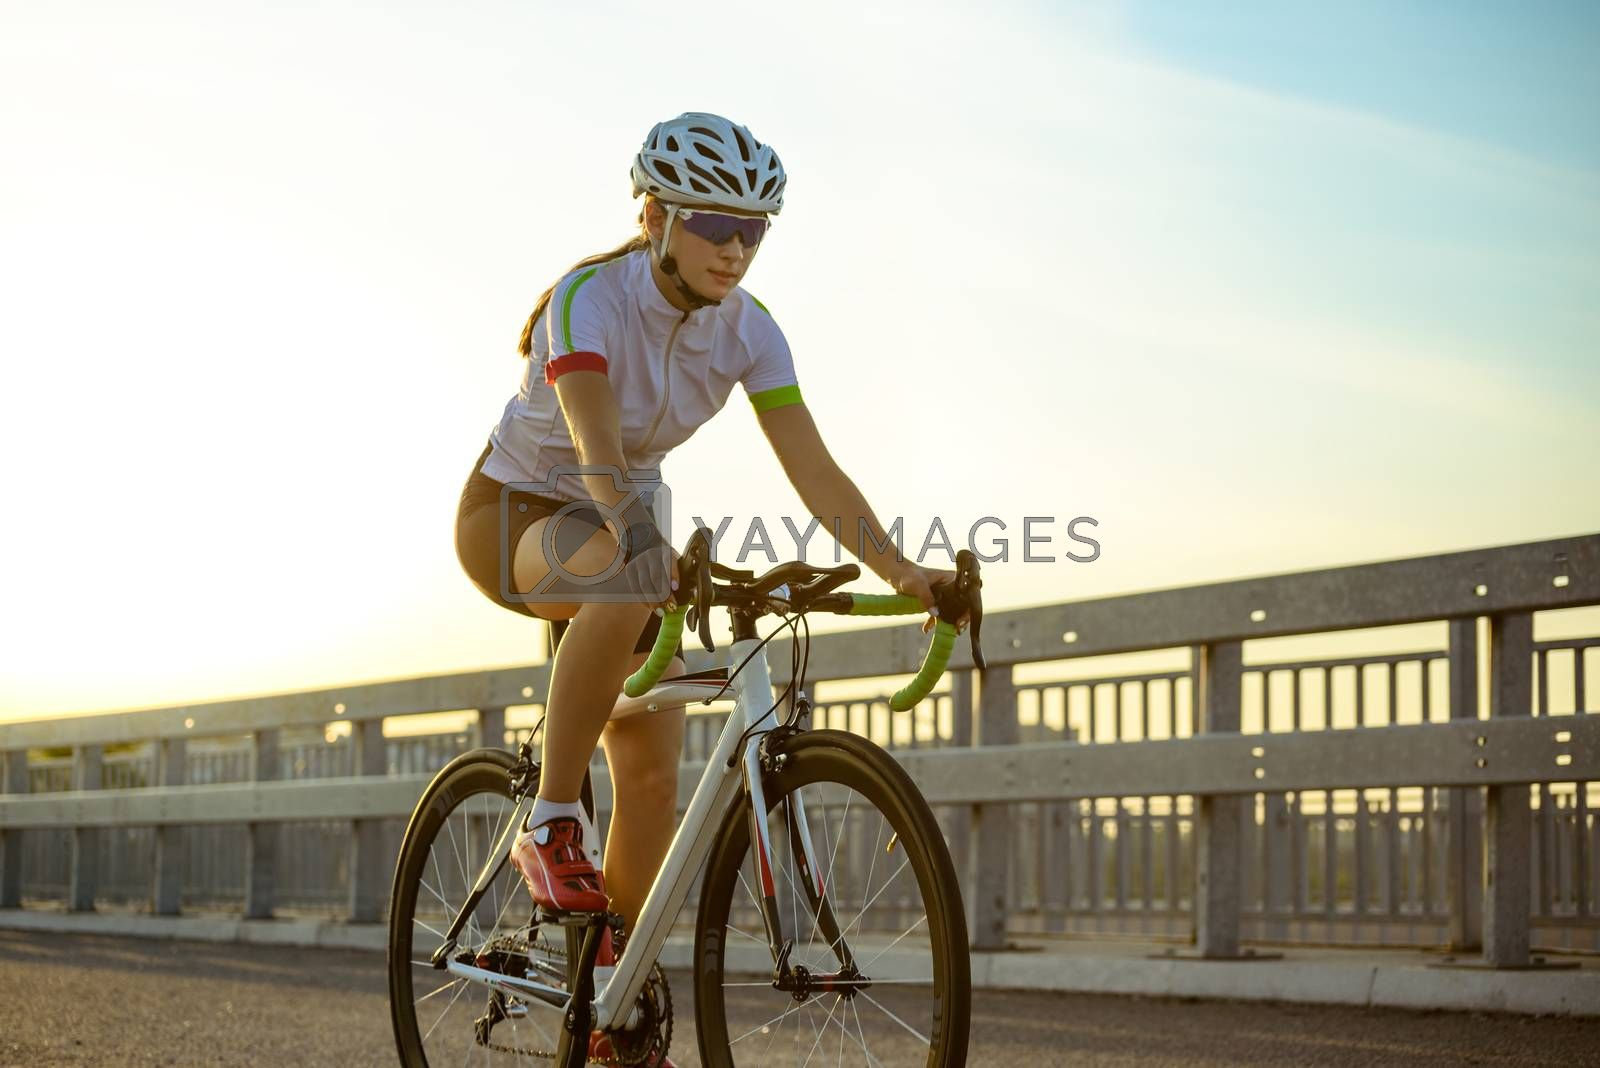 Young Woman Cyclist Riding Road Bicycle on the Street in the City at Hot Summer Sunset. Healthy Lifestyle and Urban Sport Concept.